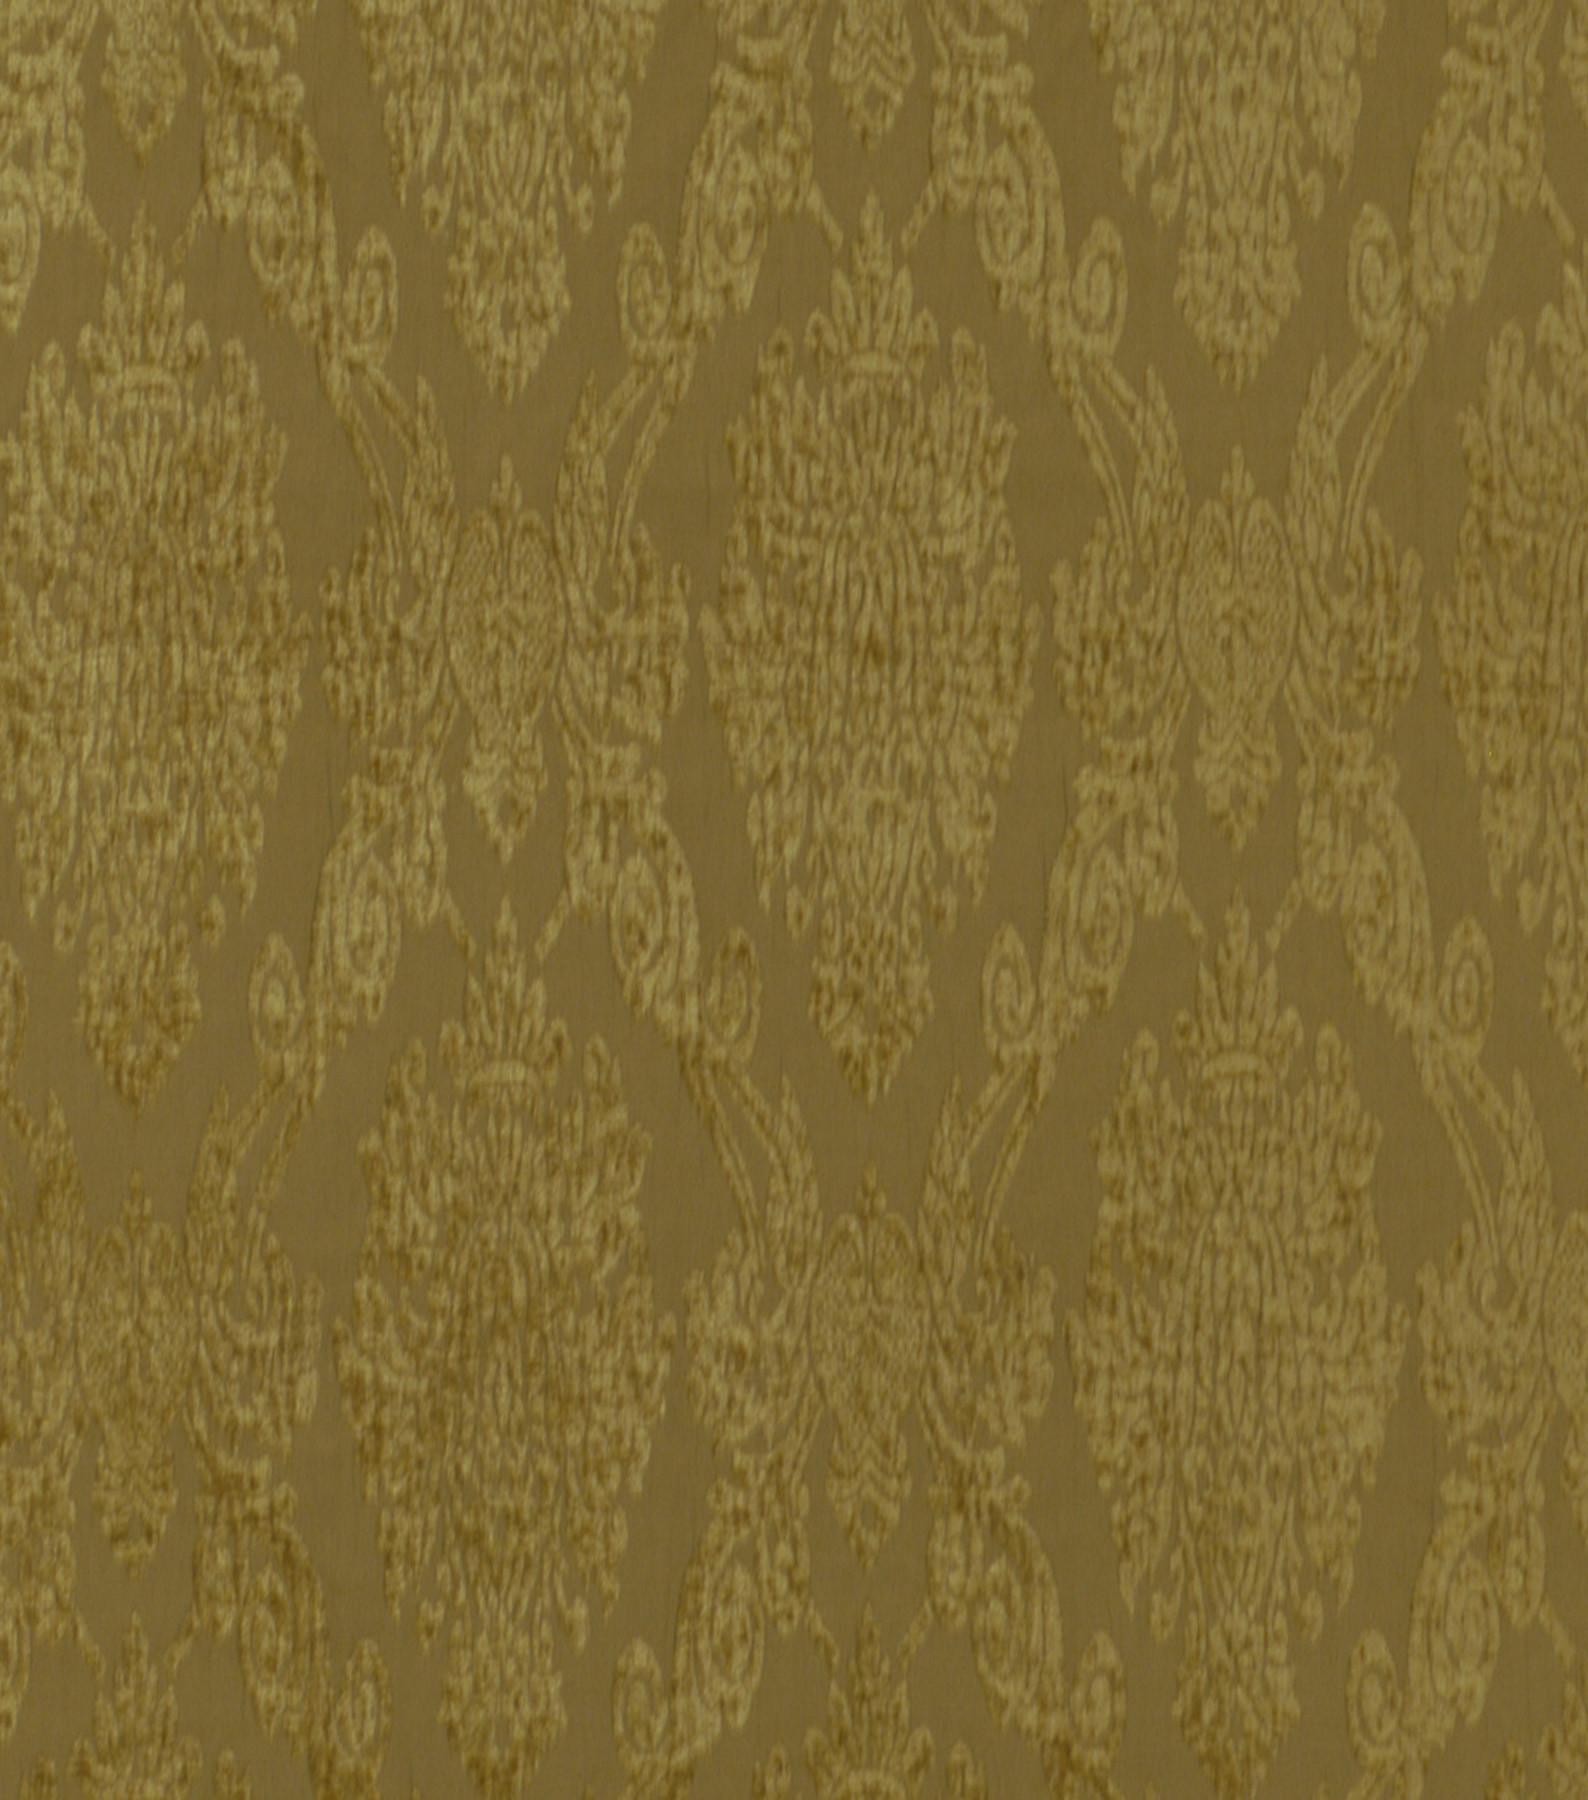 Home Decor 8\u0022x8\u0022 Fabric Swatch-Robert Allen Royal Damask Champagne